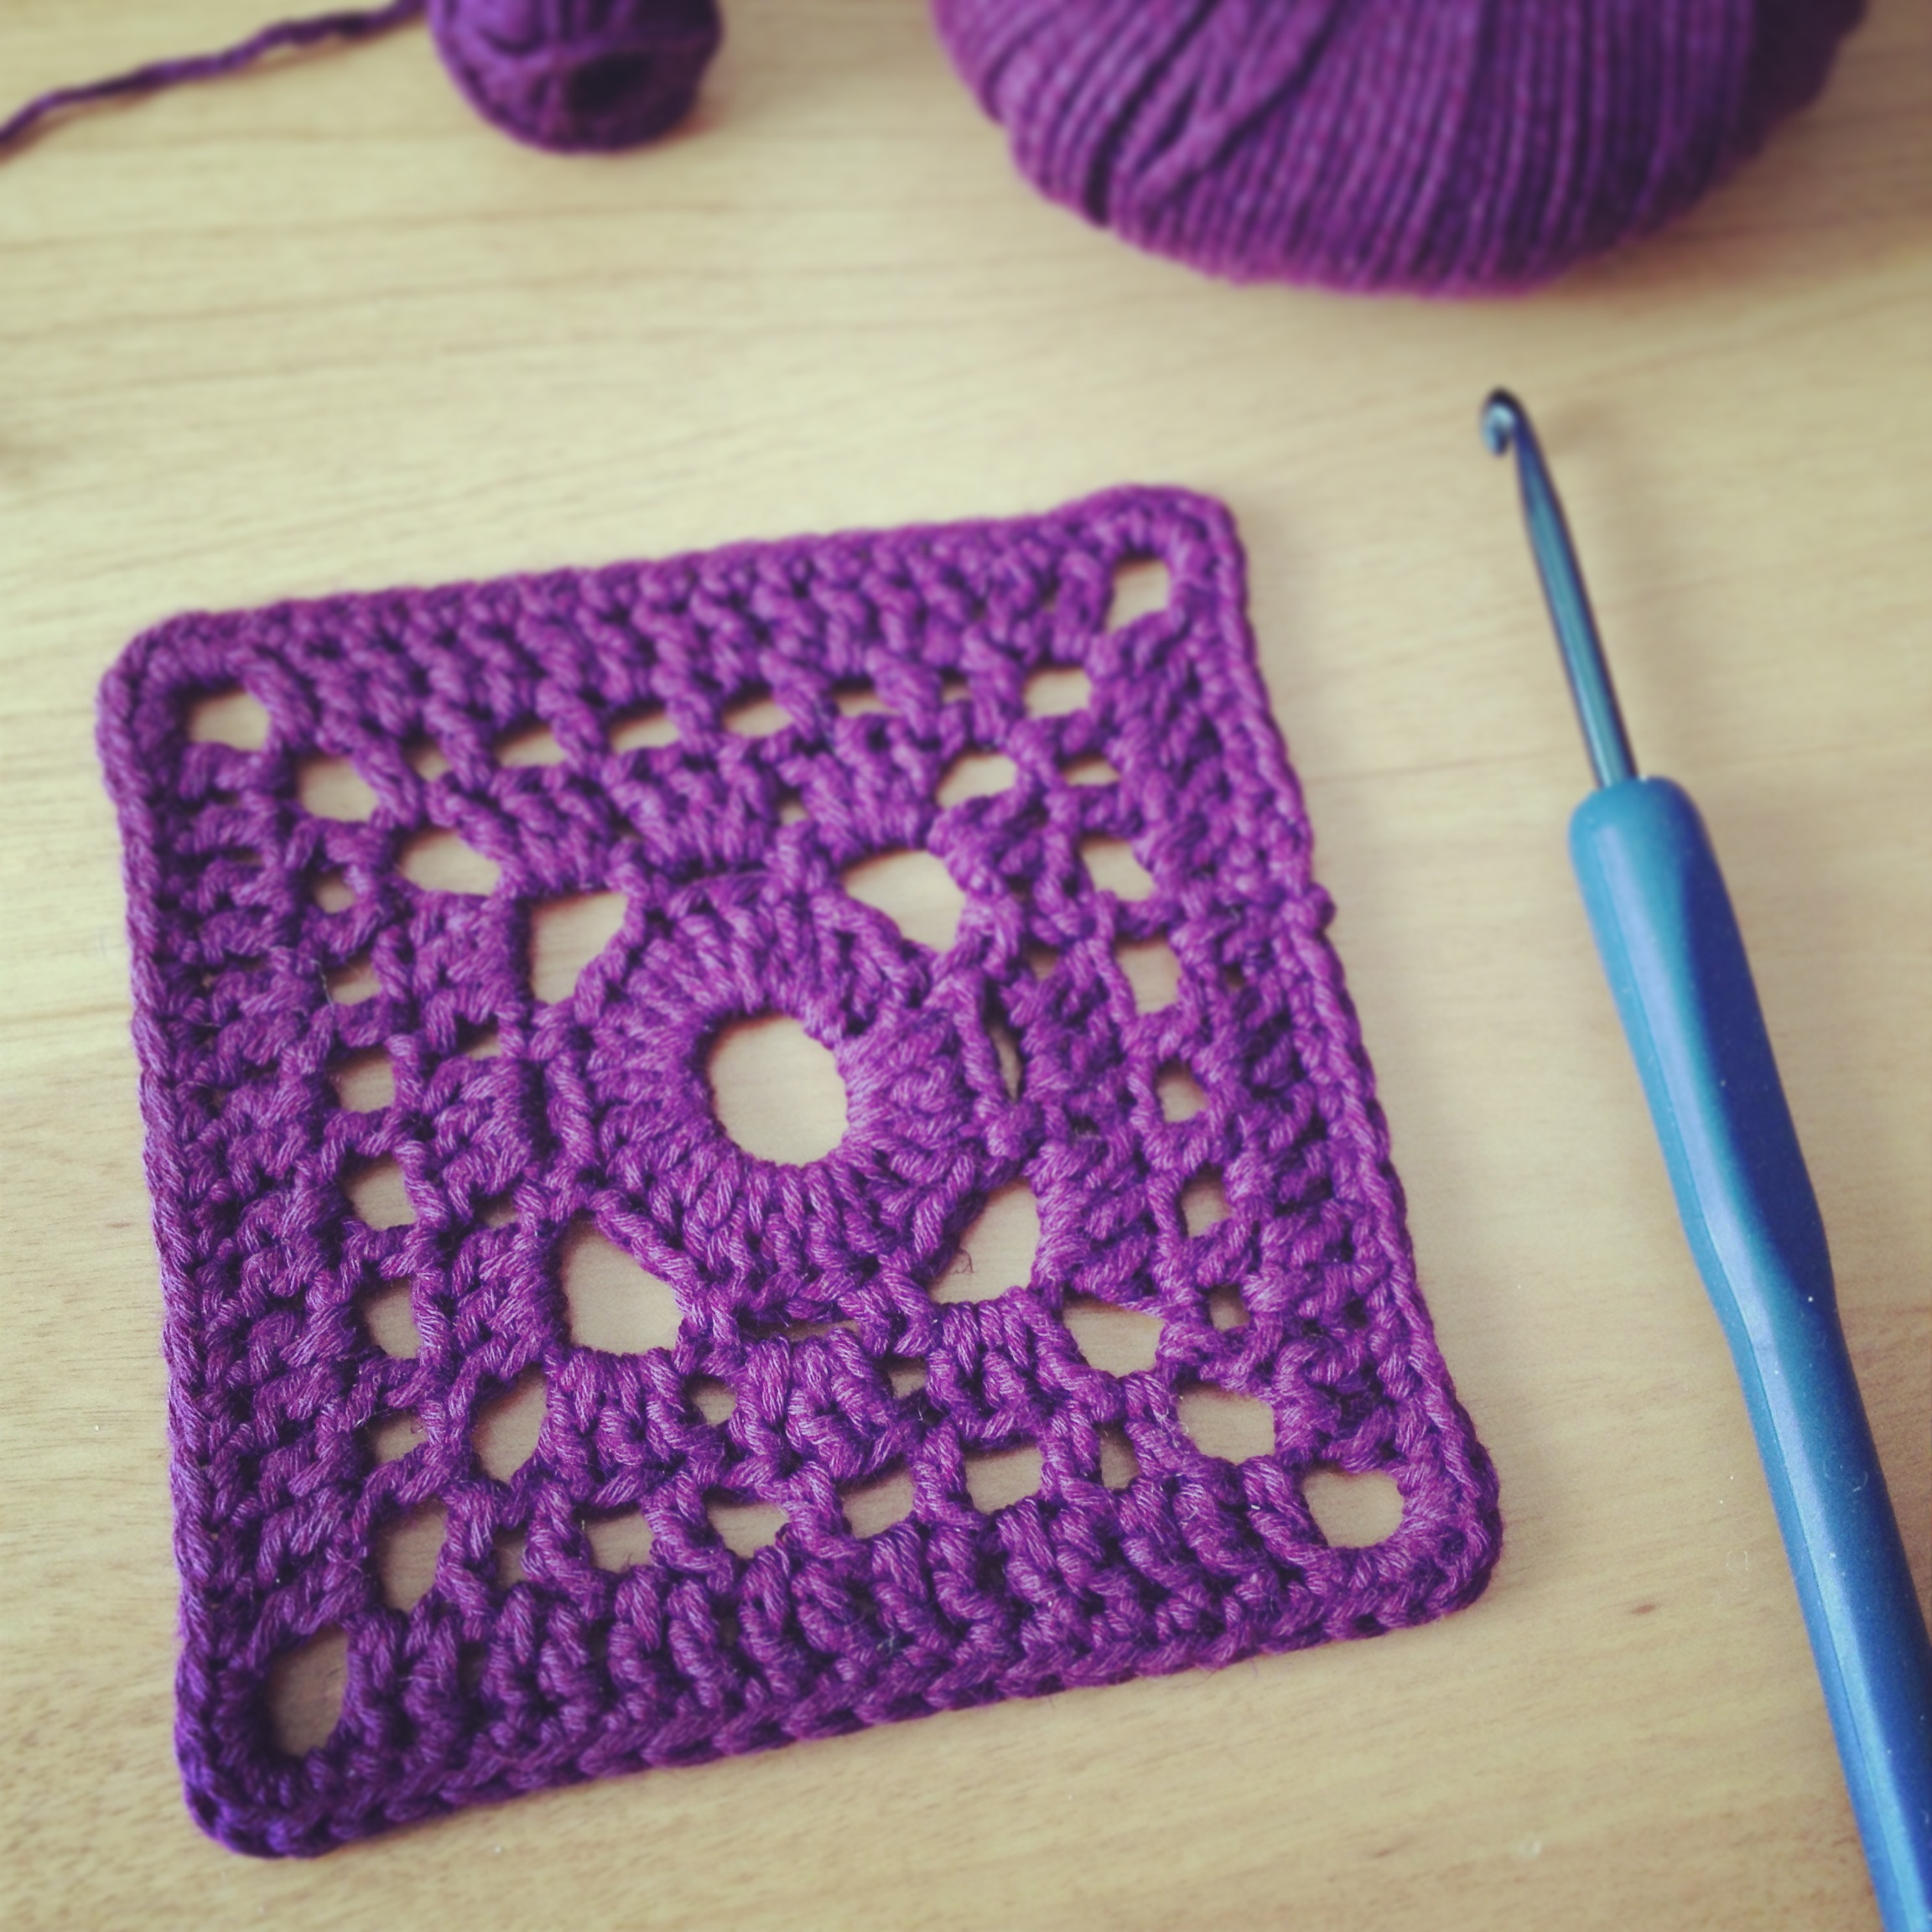 Free Crochet Granny Square Motifs : Another Square Crochet Motif, Not the Granny Square!